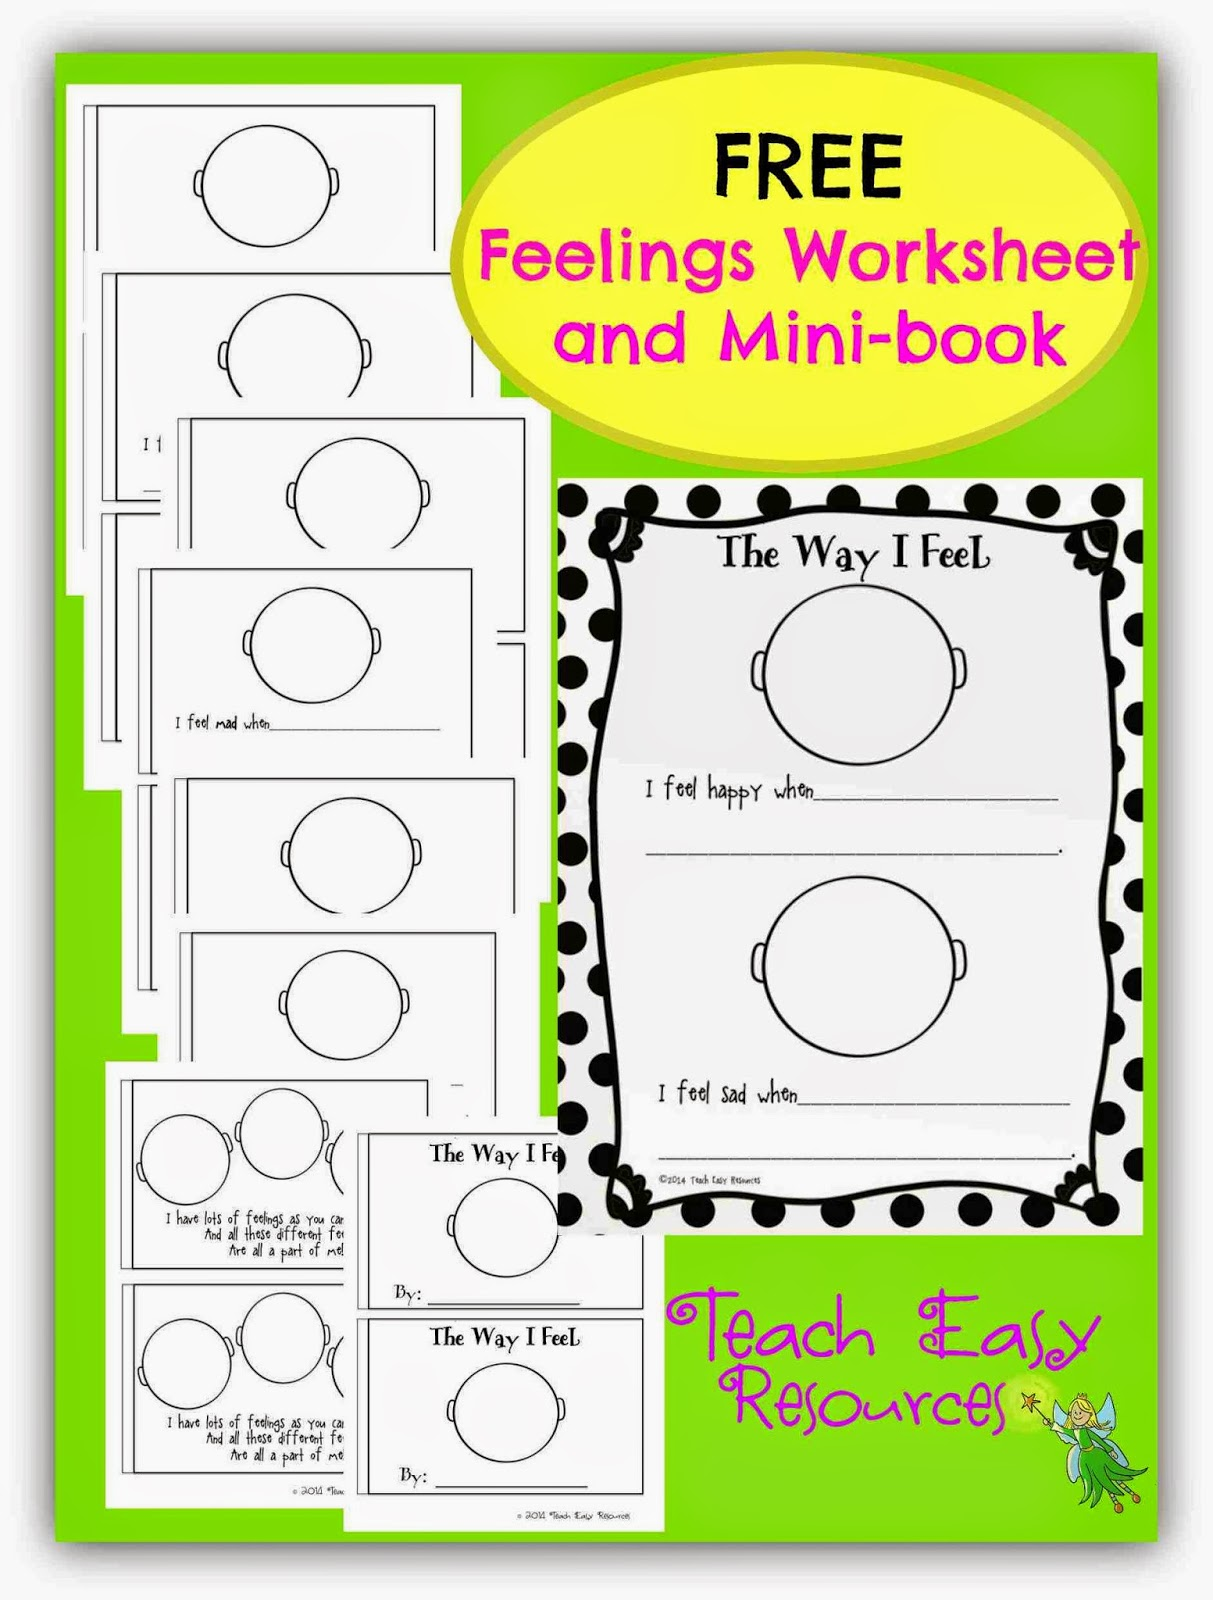 Classroom Freebies Too Feelings Worksheet And Mini Book For Pre K To 1